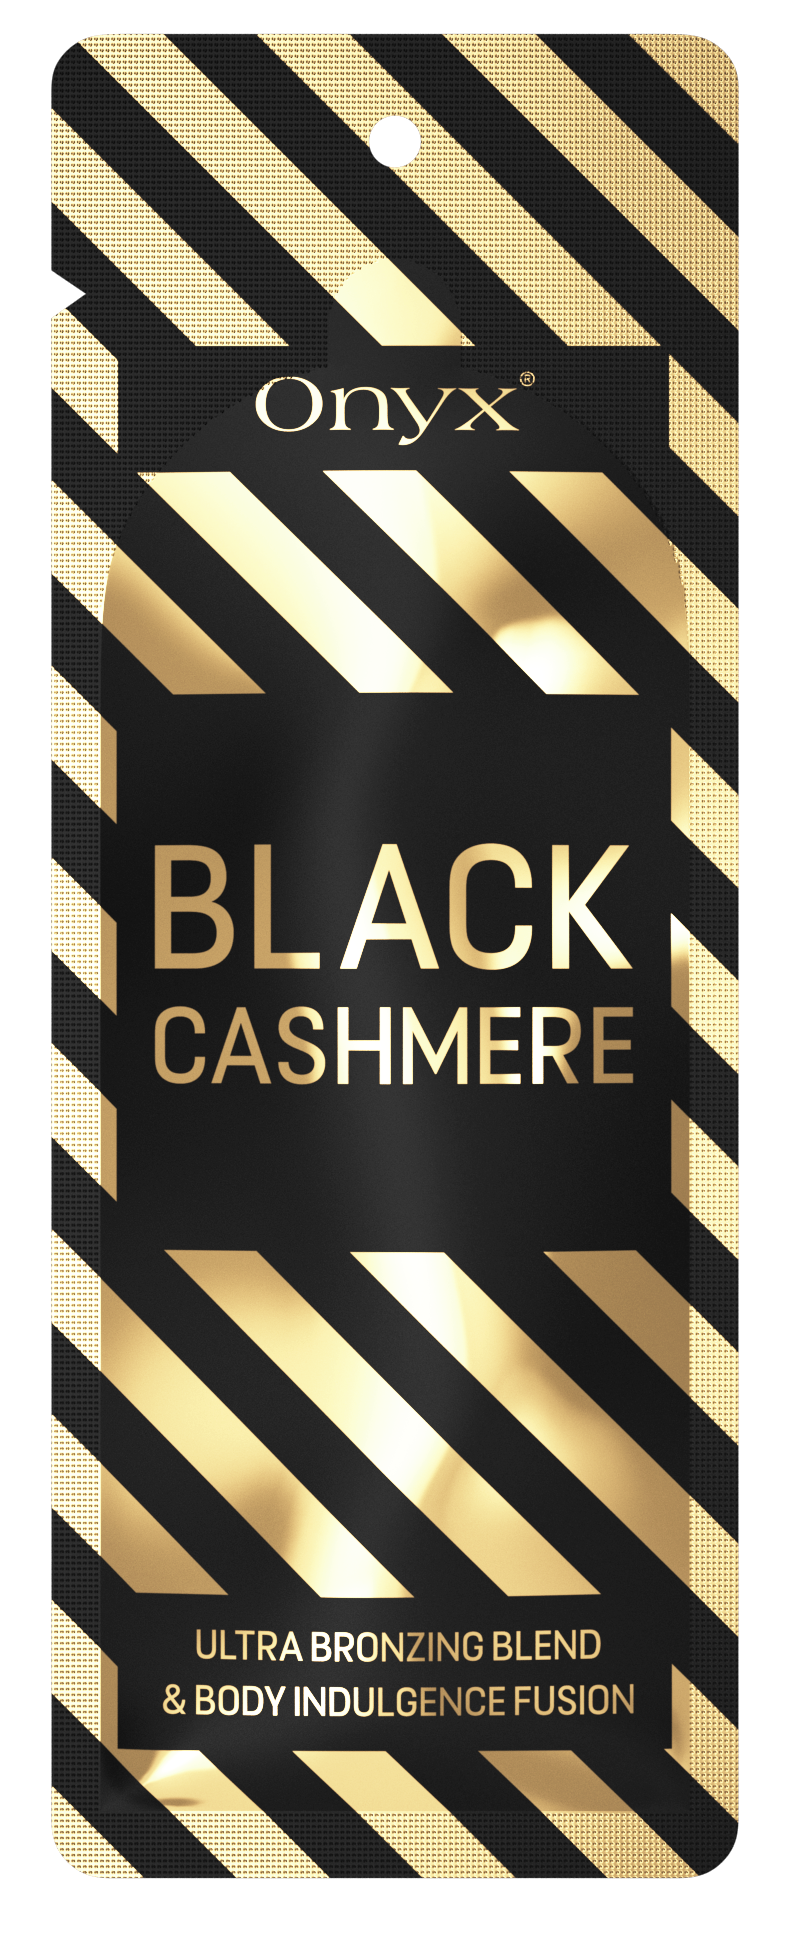 BLACK CASHMERE Onyx tan